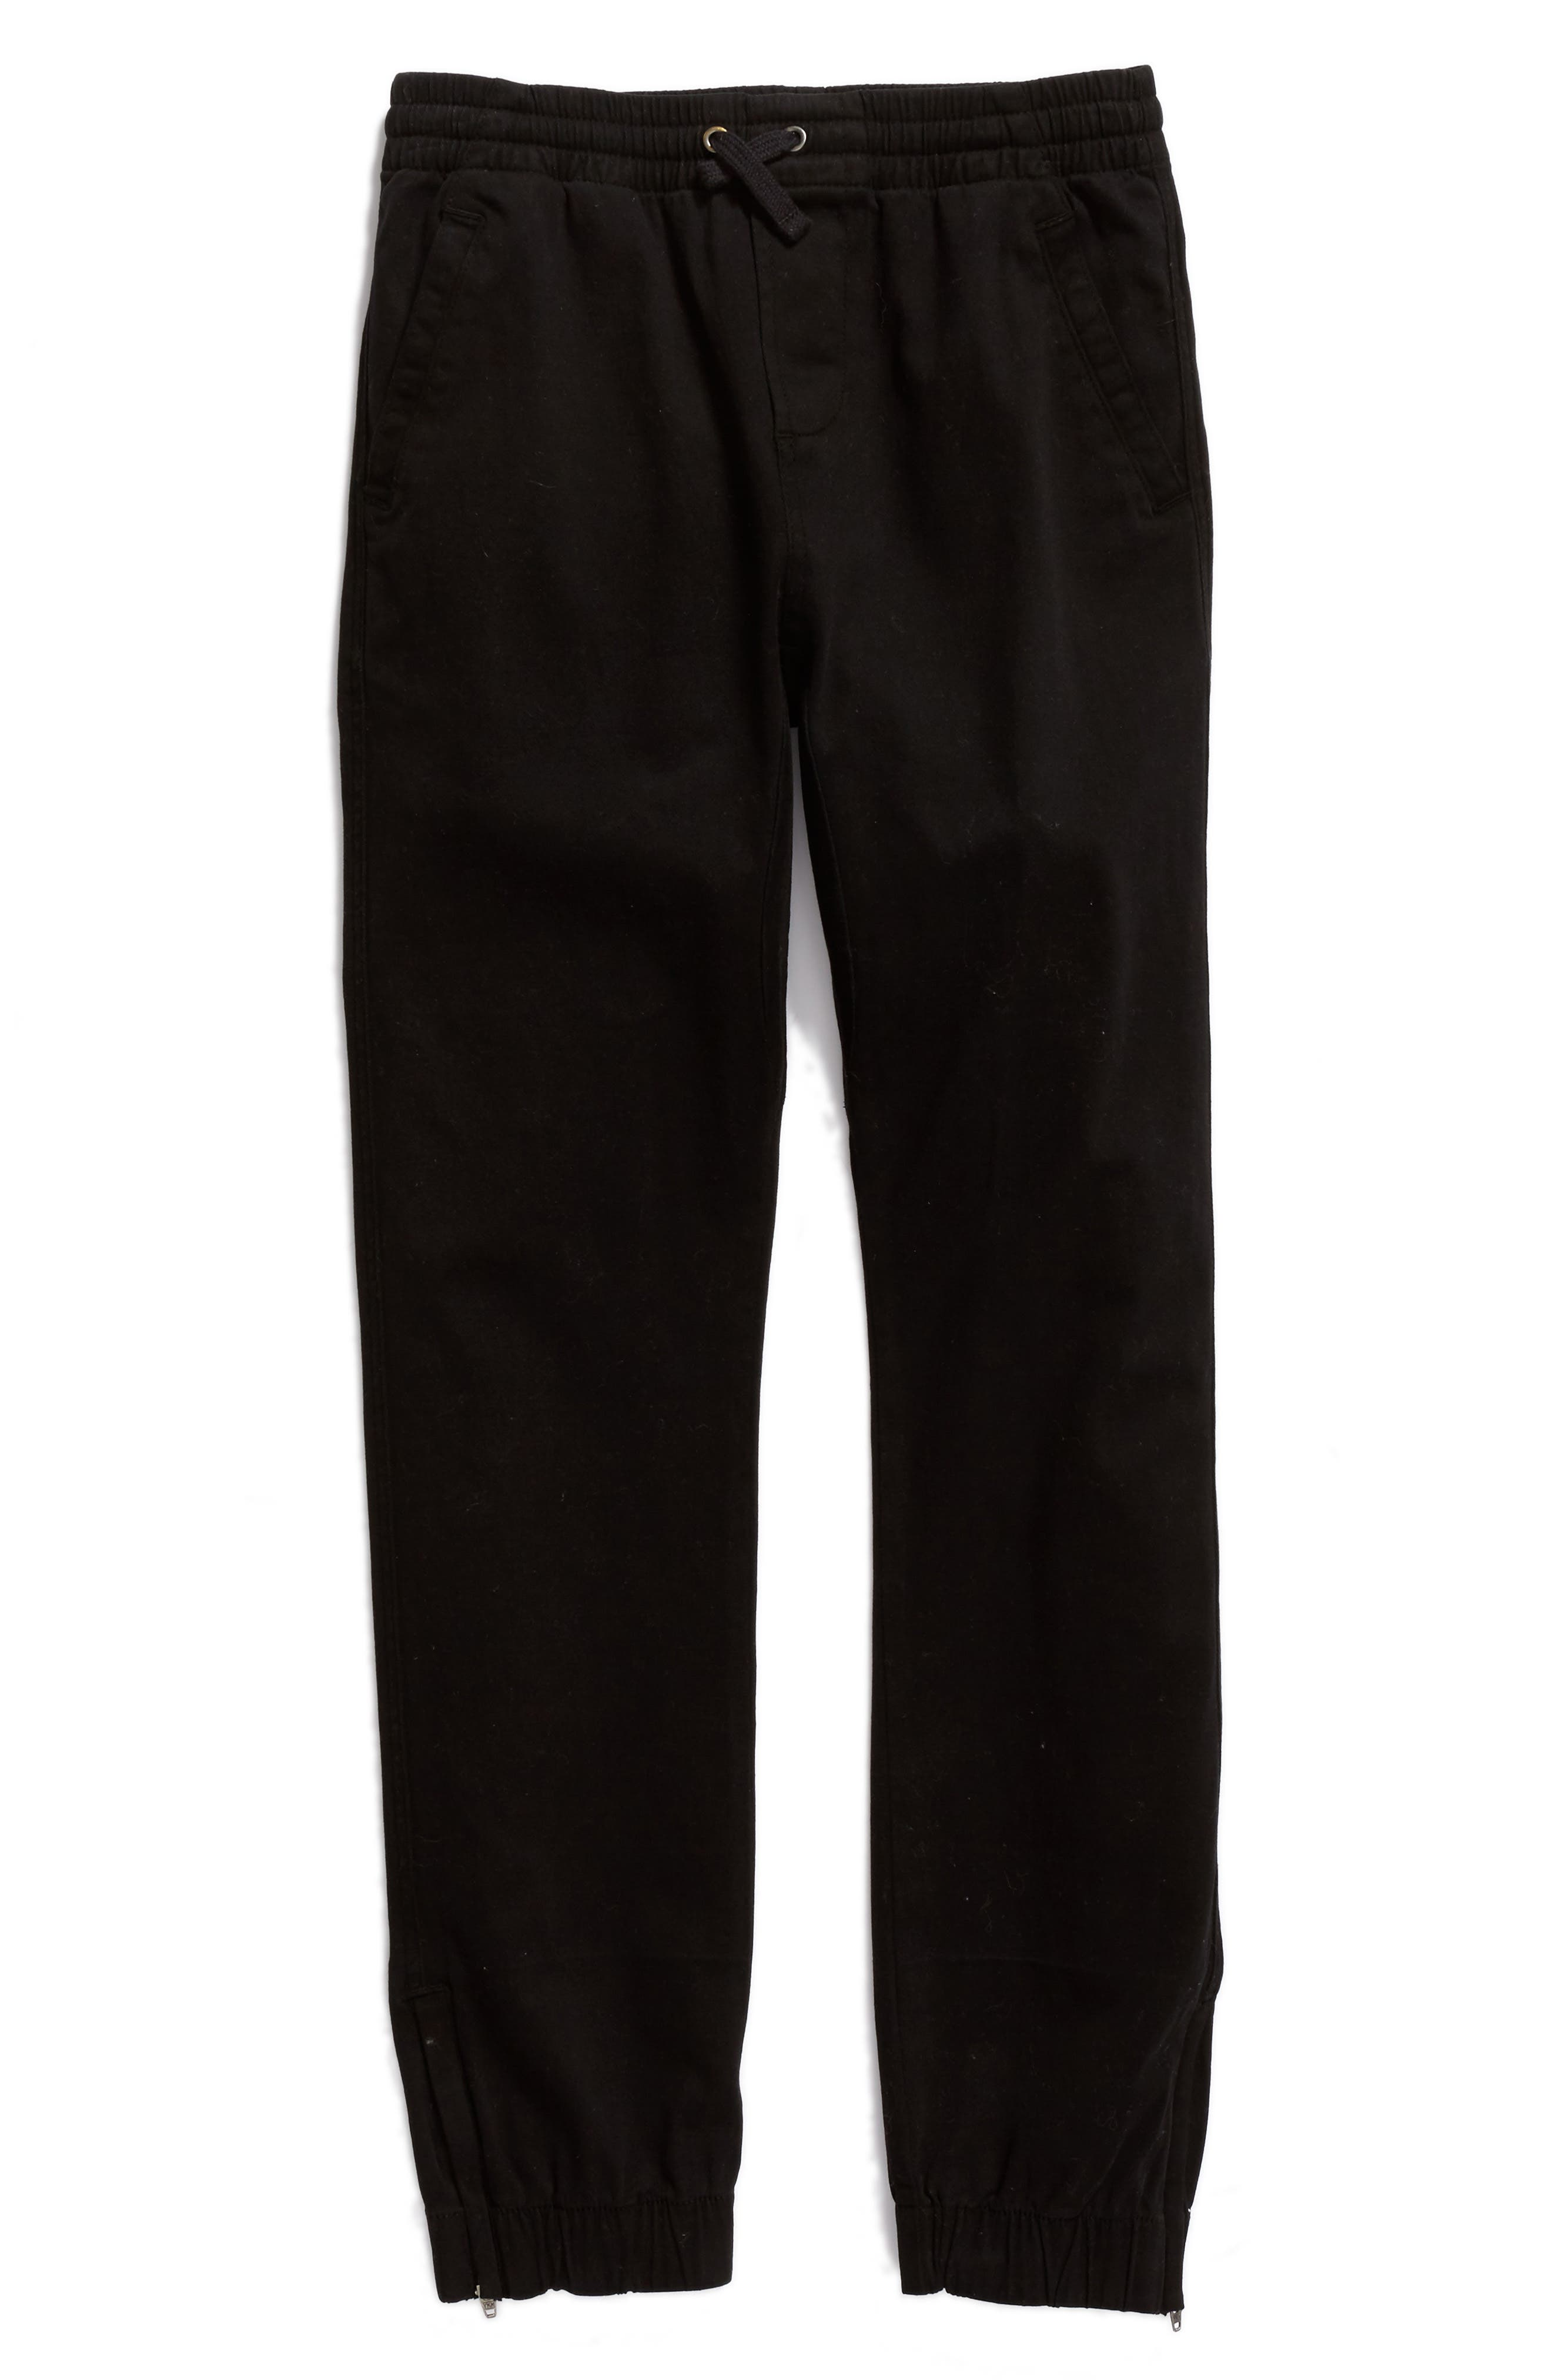 Washed Sweatpants,                         Main,                         color, Black